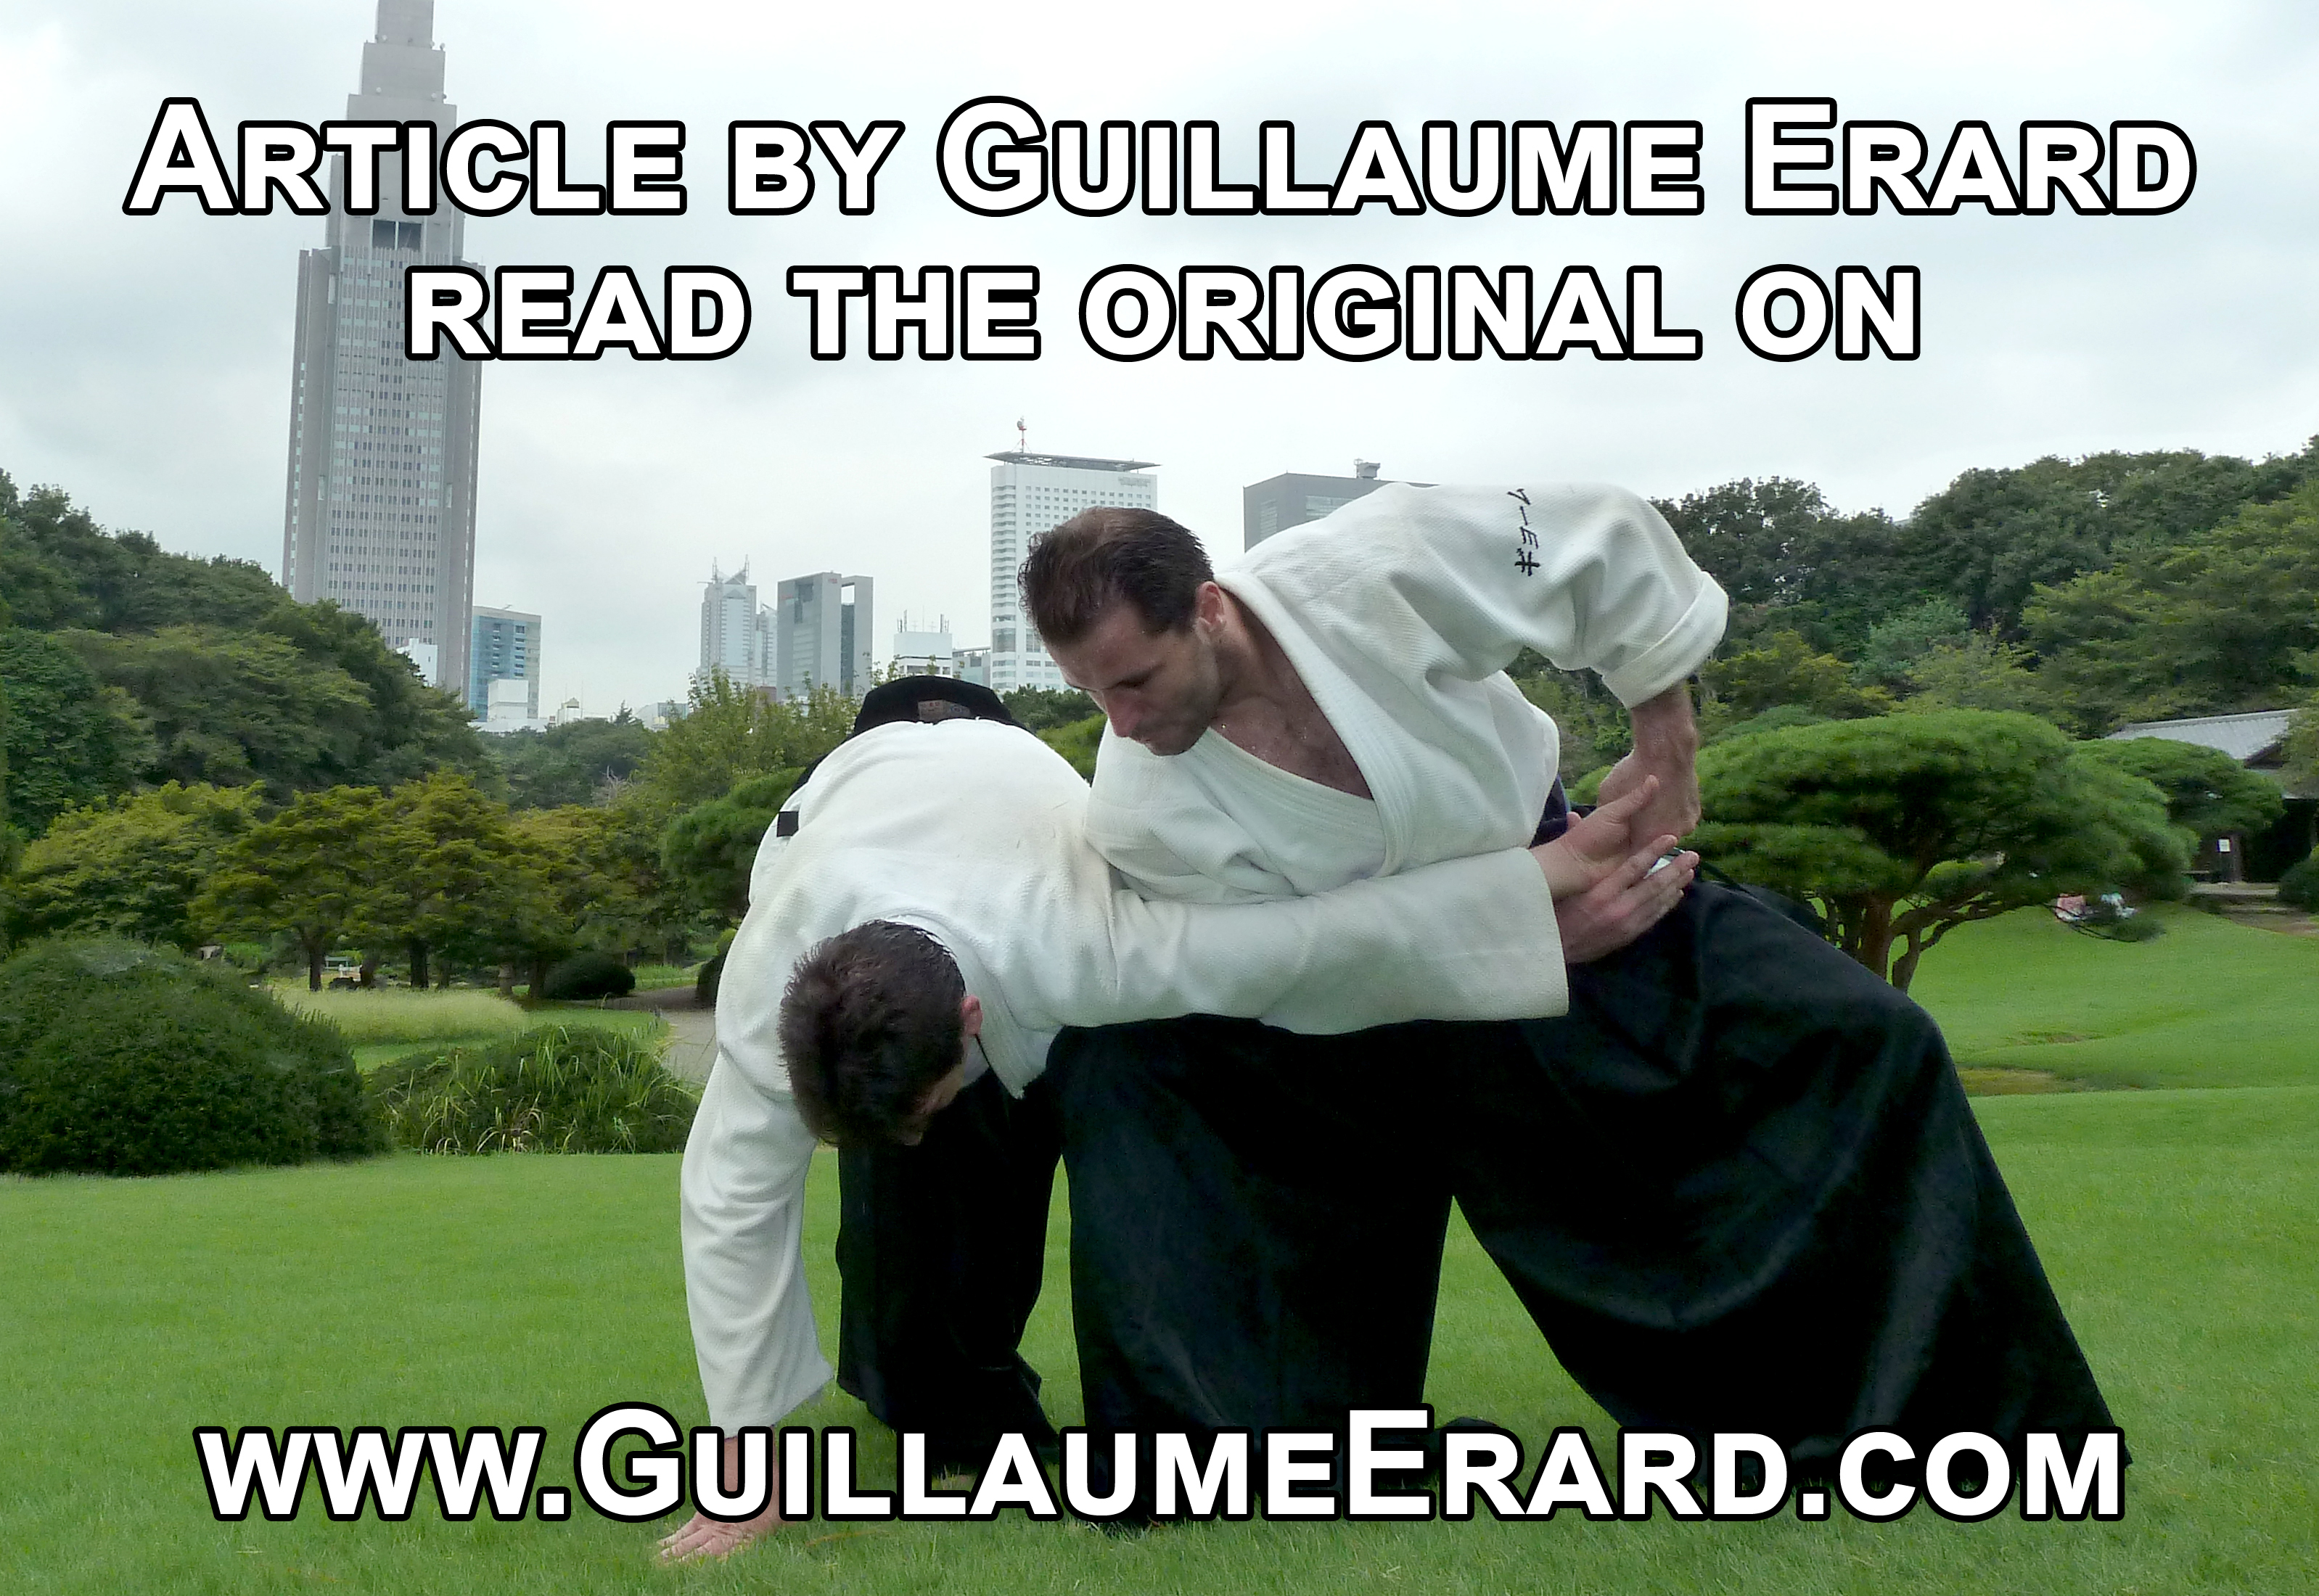 kangeiko 2012 certificate awarded to Guillaume Erard